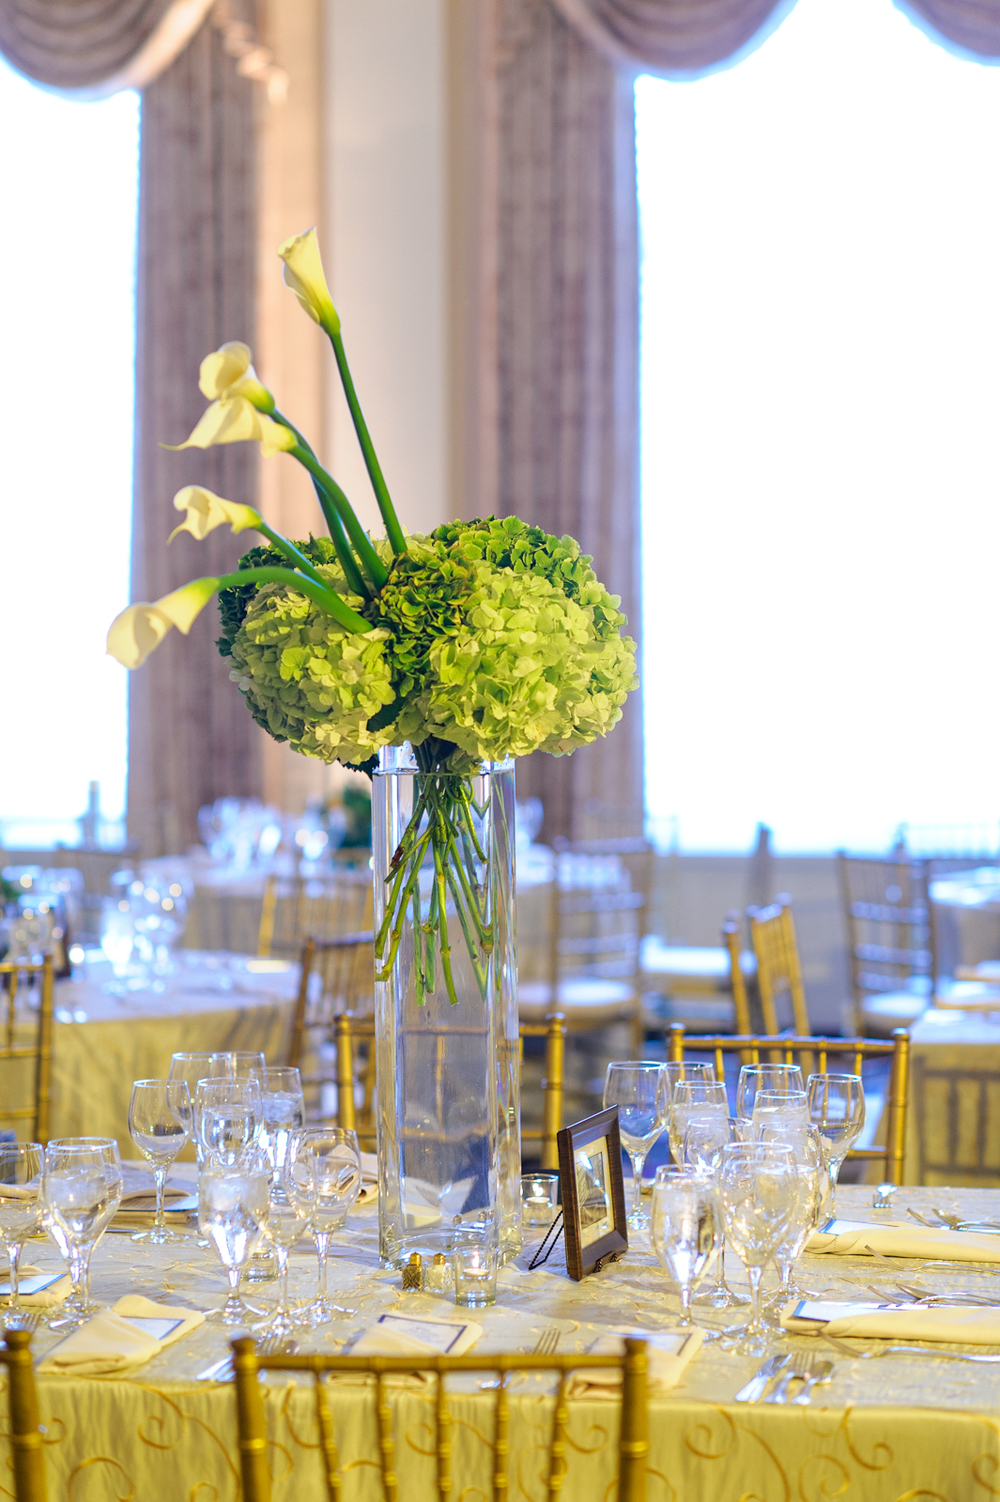 wedding photography dc photographer - district of columbia photography weddingphoto 2012_-35.jpg